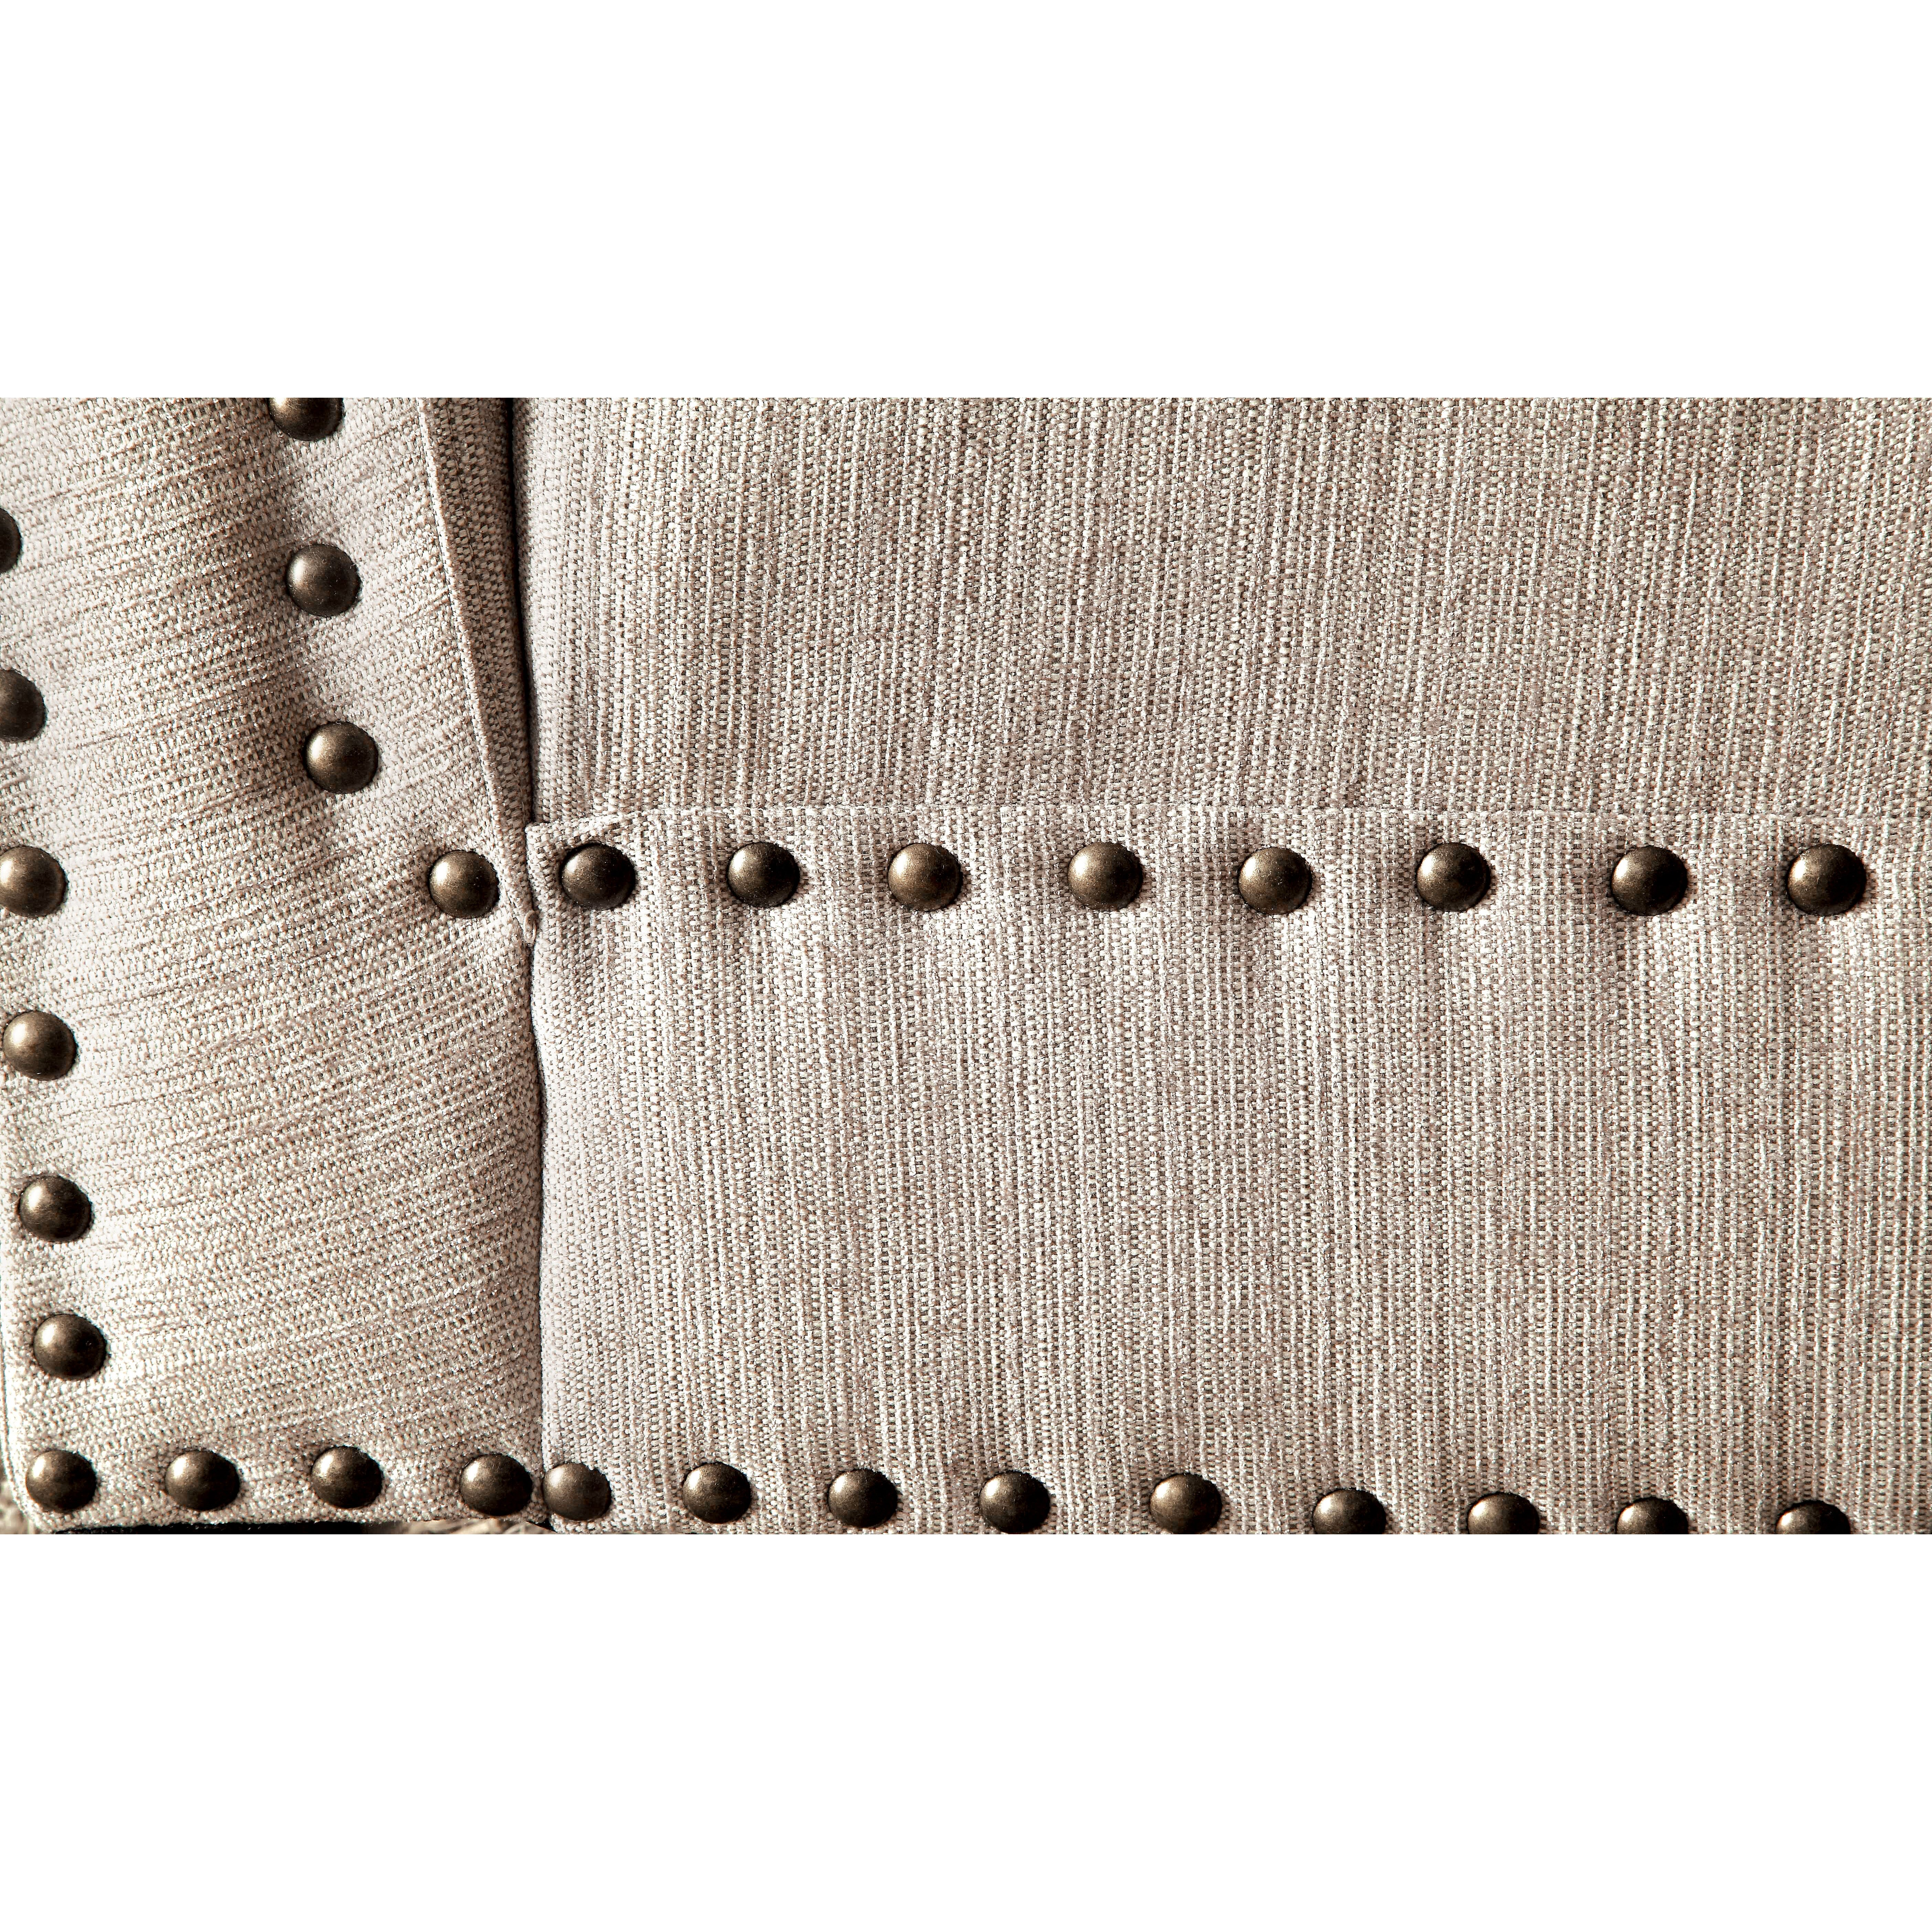 darby home co jane chaise lounge astaire linen chaise lounge